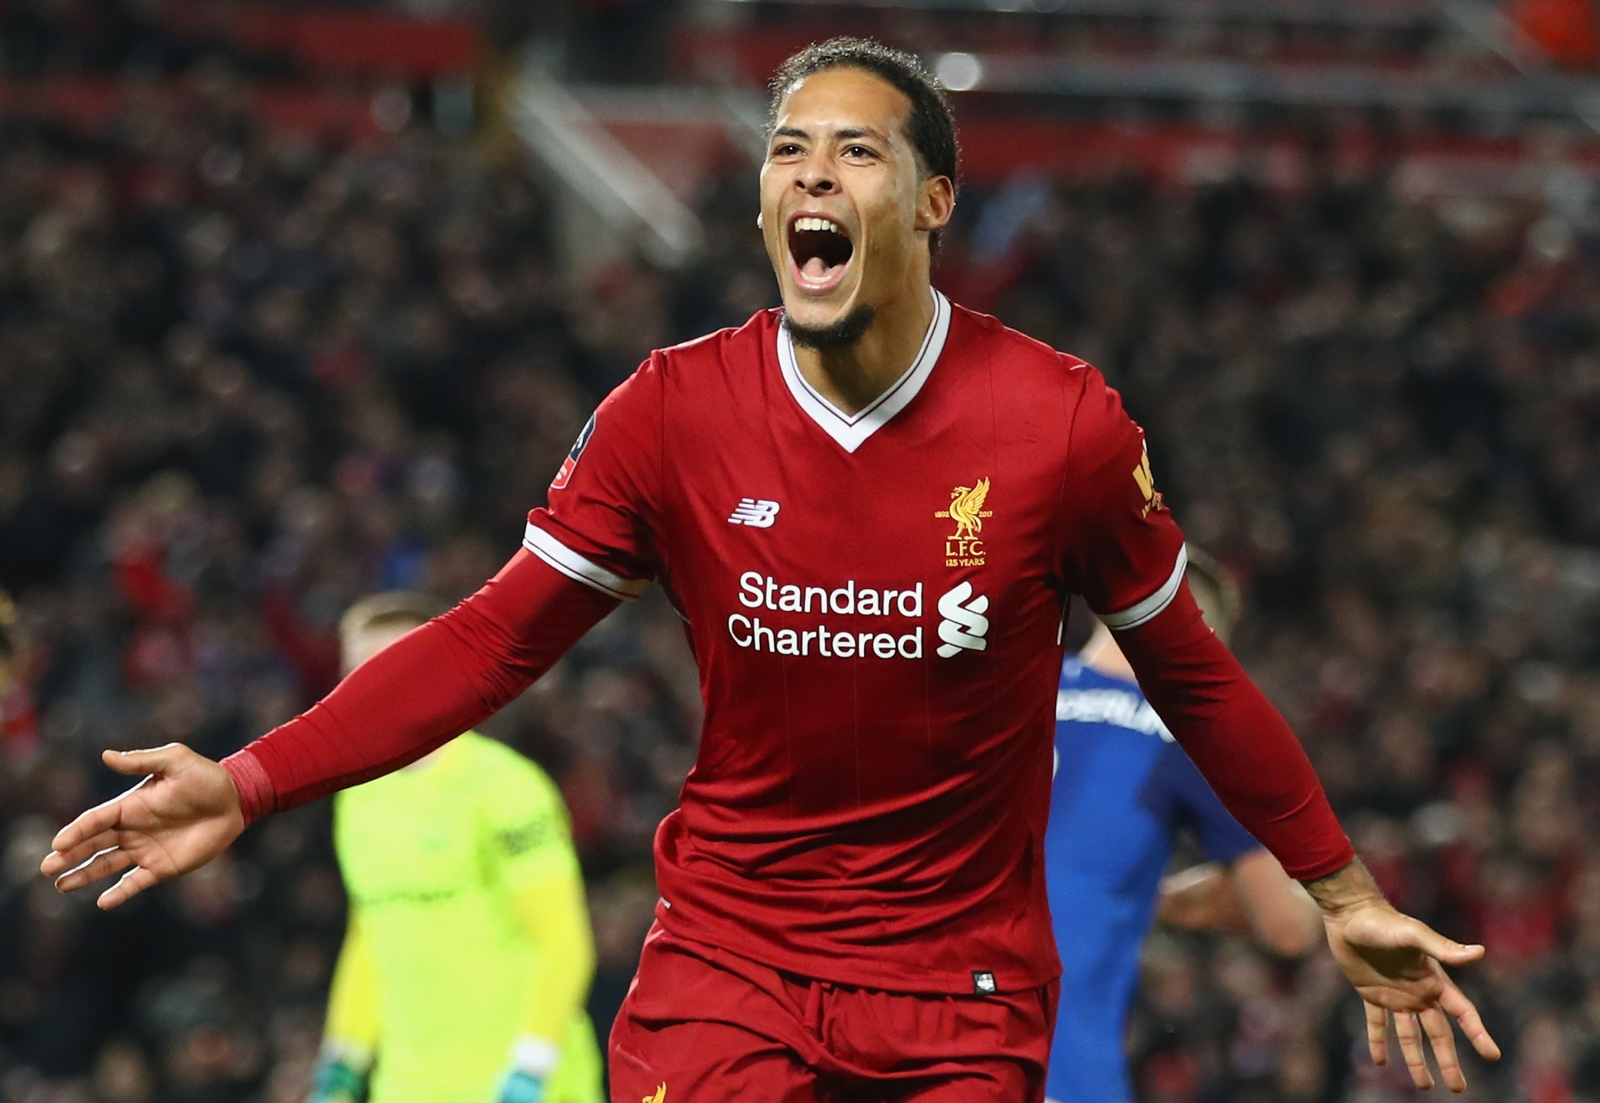 Dietmar Hamann: Liverpool need more than Van Dijk to win Premier League